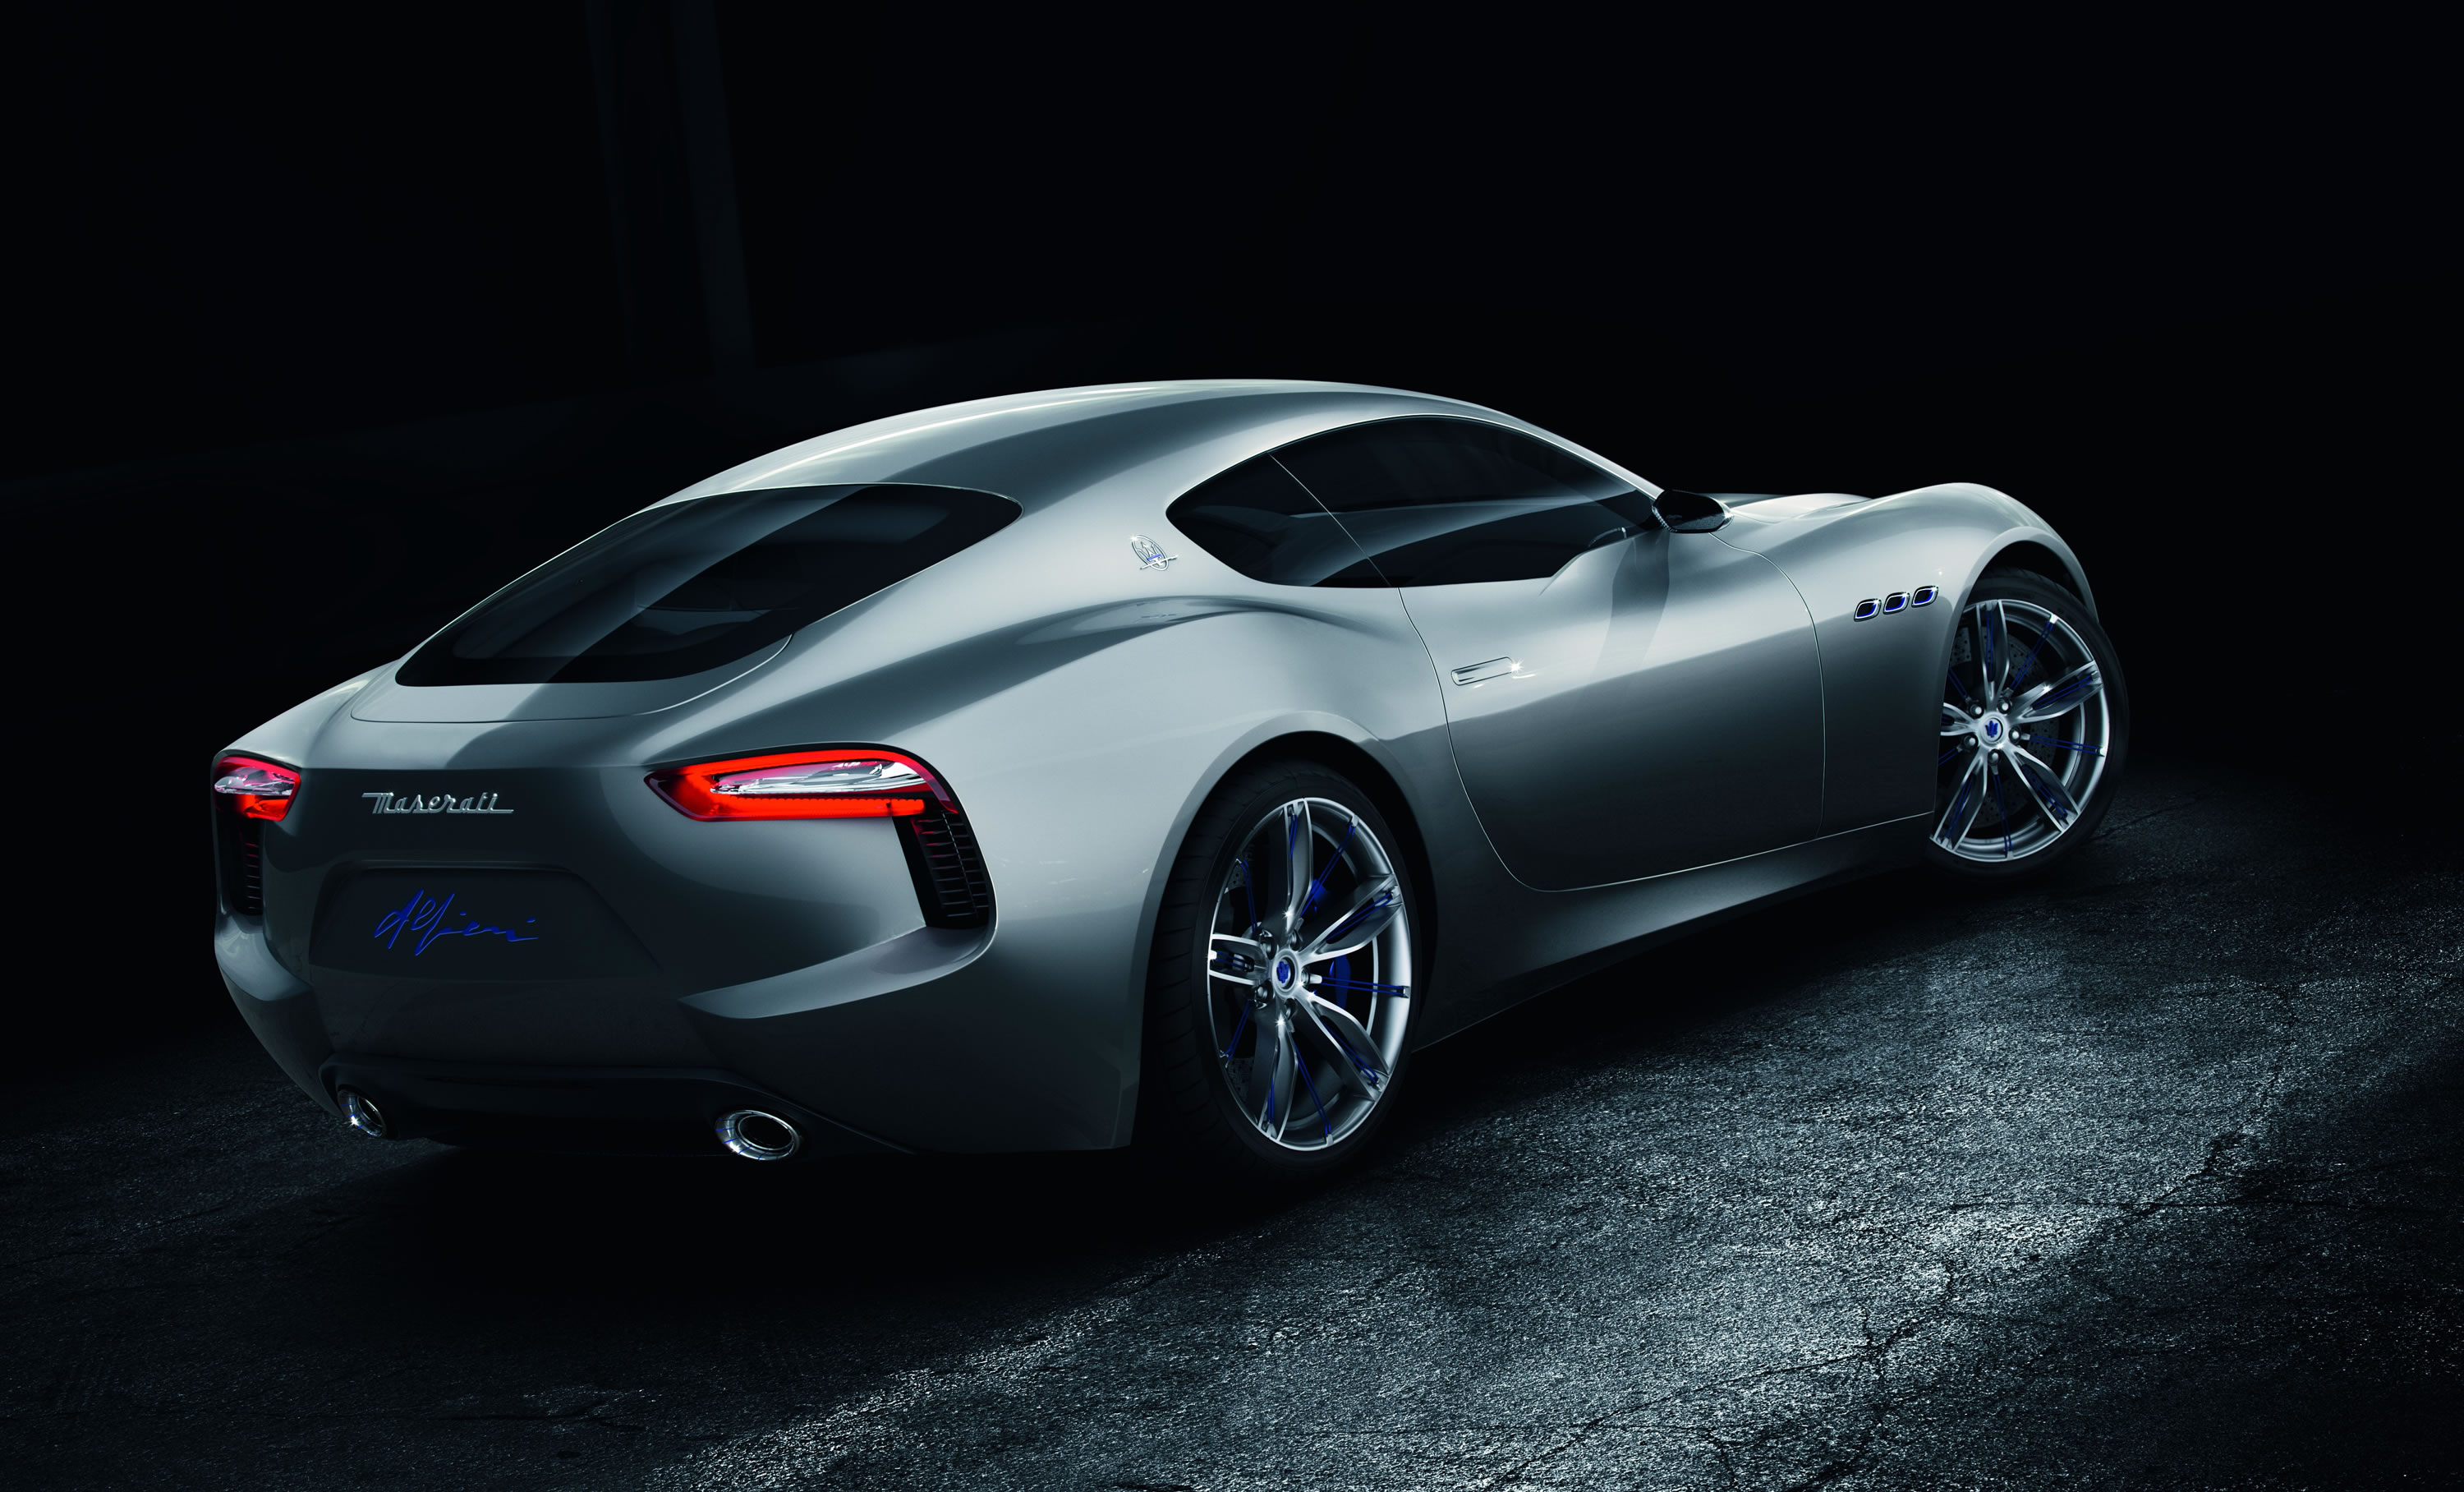 2014 Maserati Alfieri Concept Photos, Specs and Review - RS